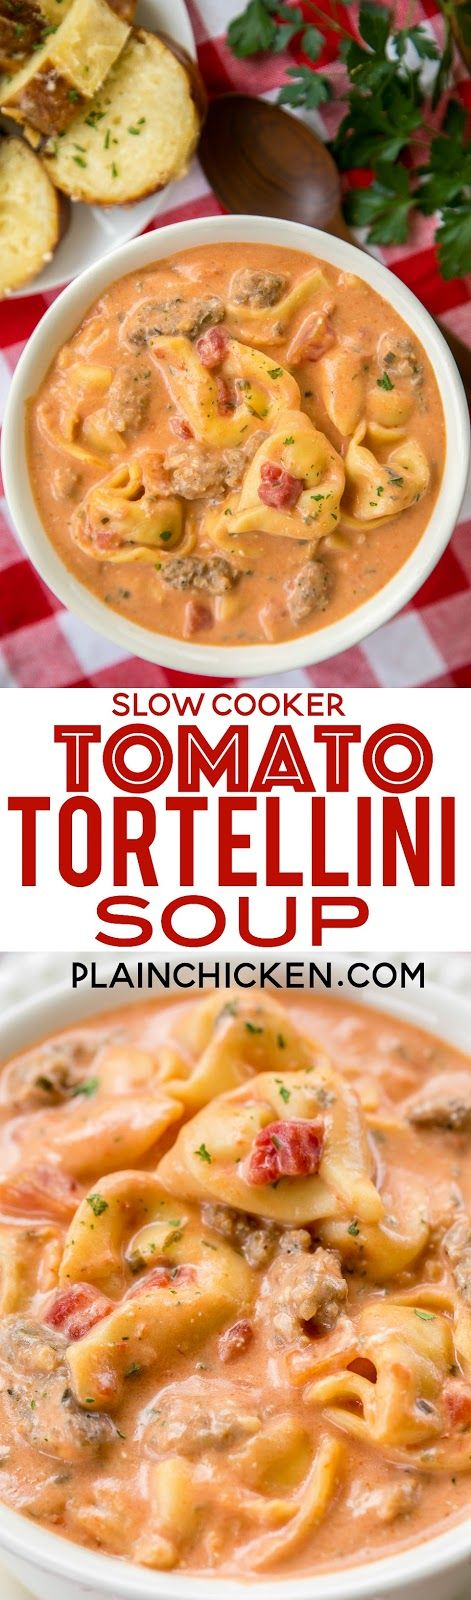 Slow Cooker Tomato Tortellini Soup – seriously delicious! Everyone LOVED this no-fuss soup recipe. Just dump everything in the